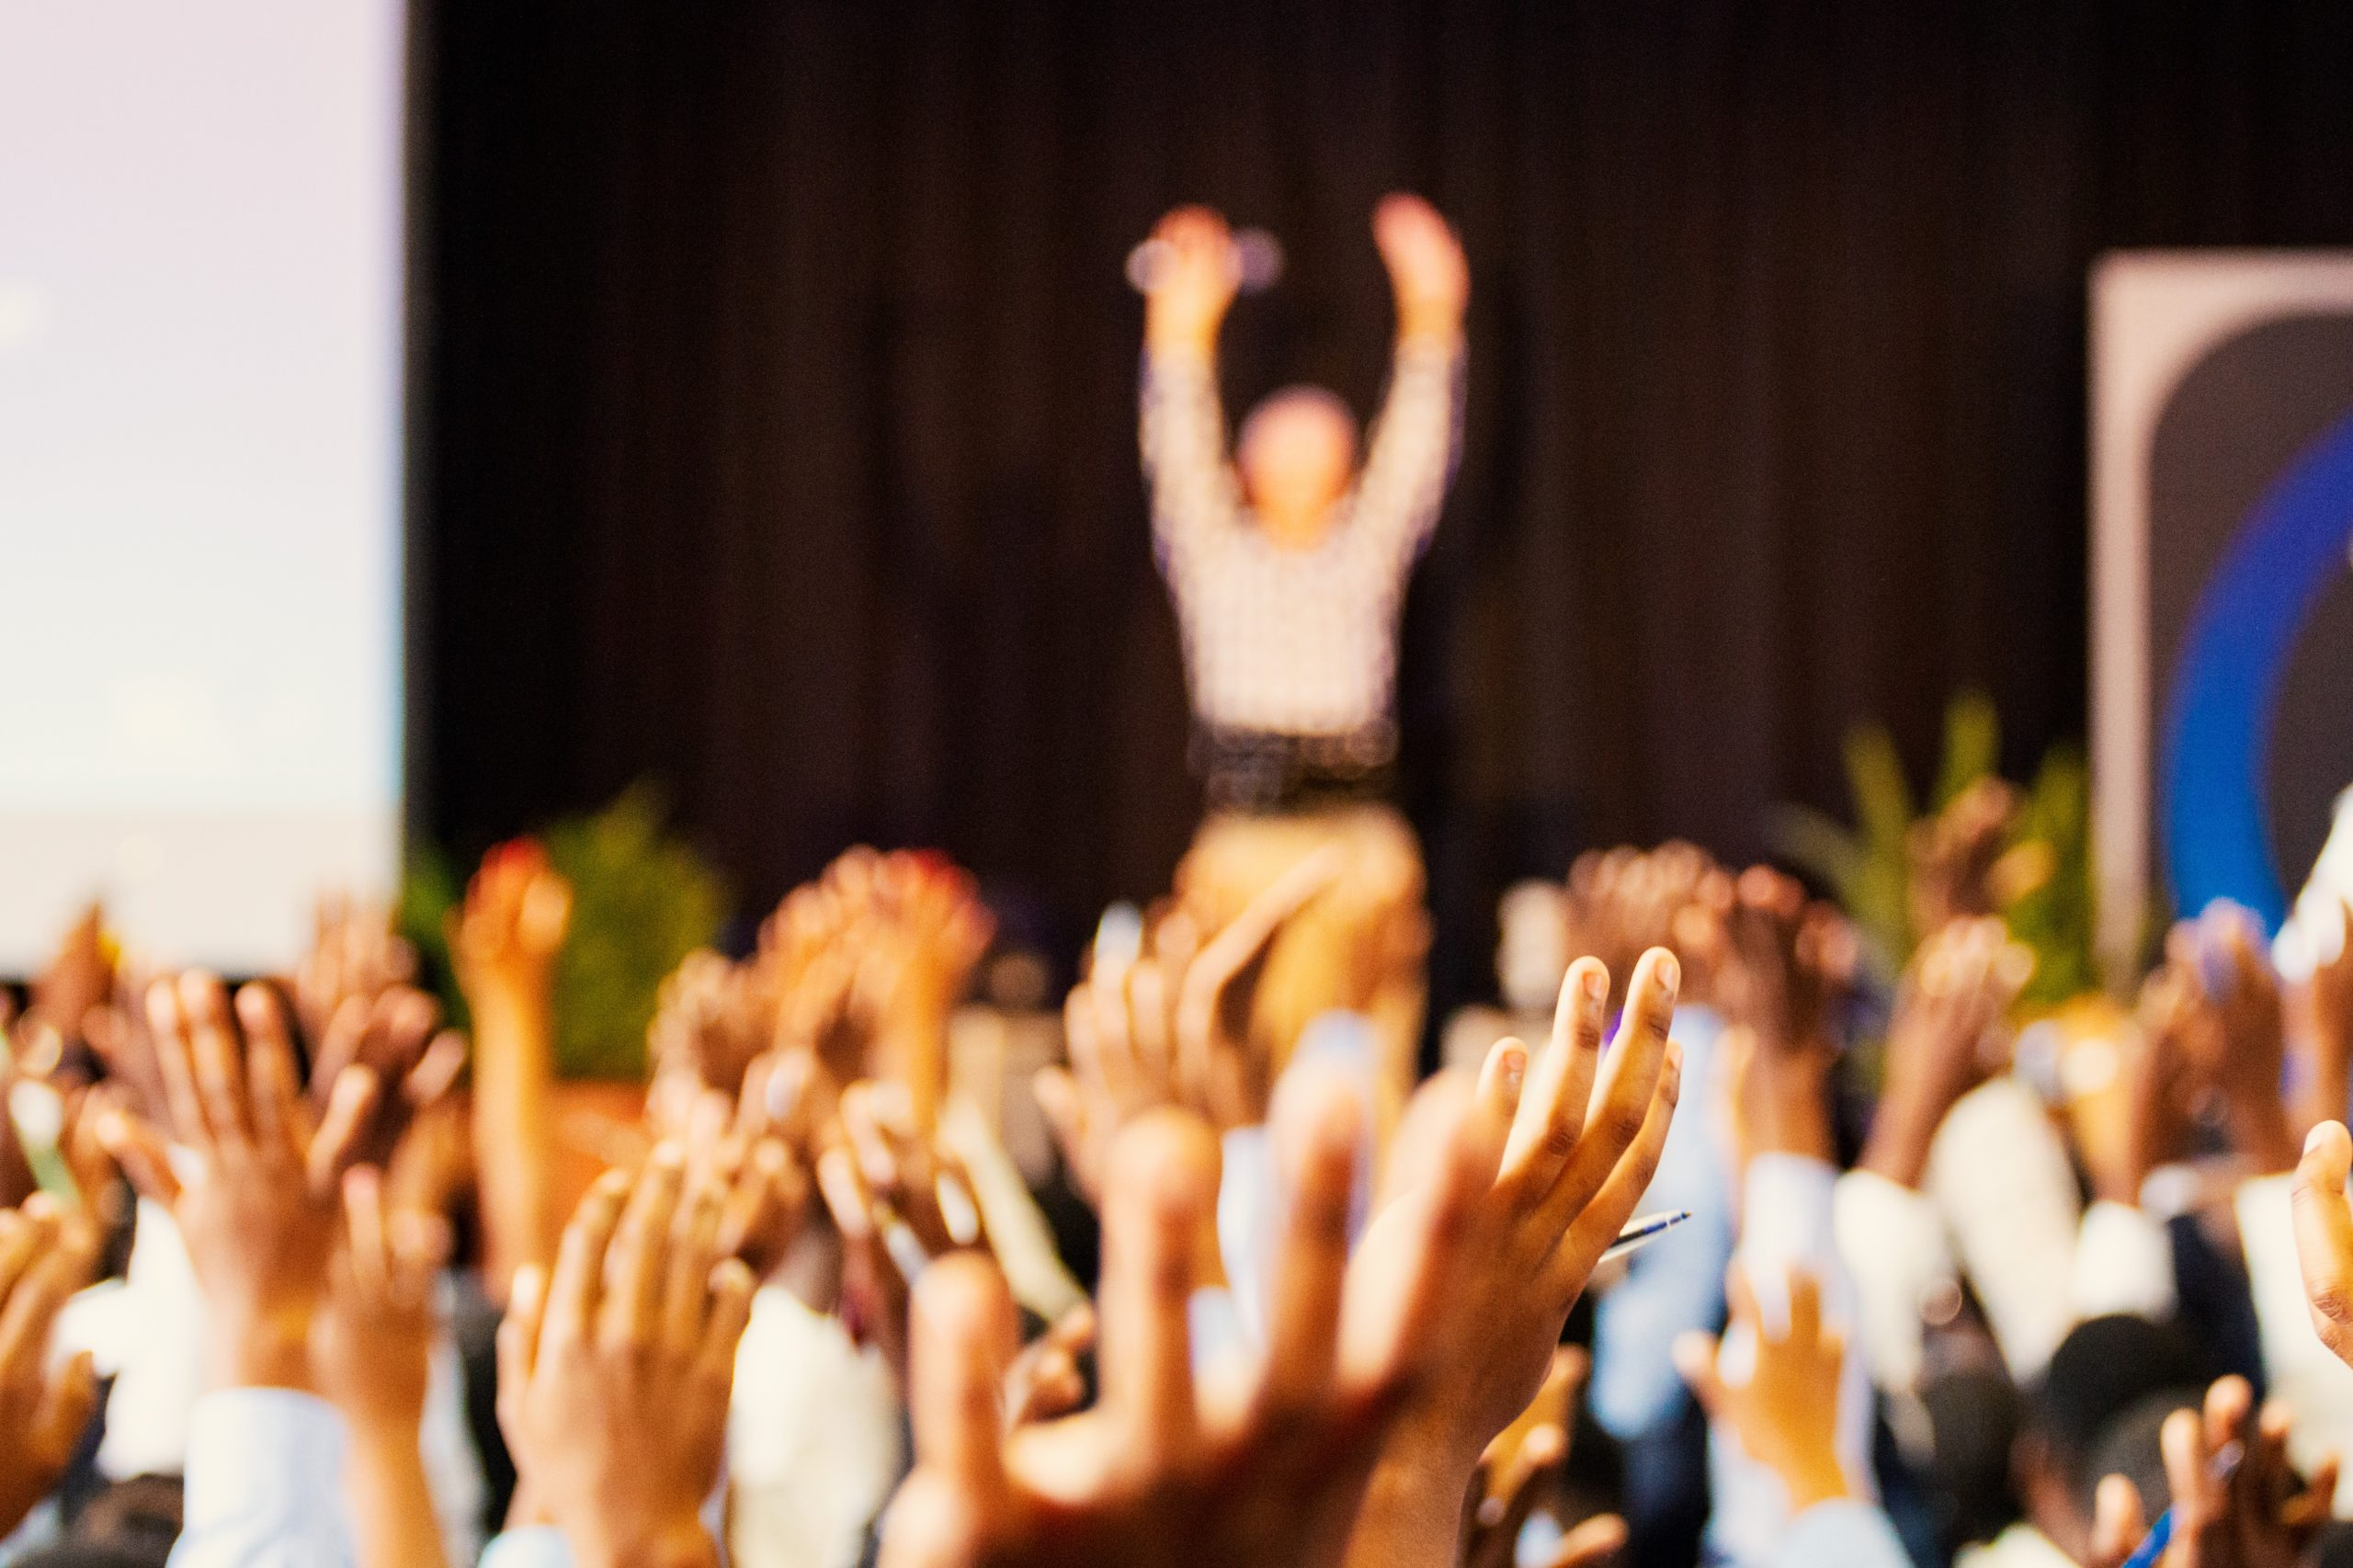 People putting their hands up in a facilitated workshop